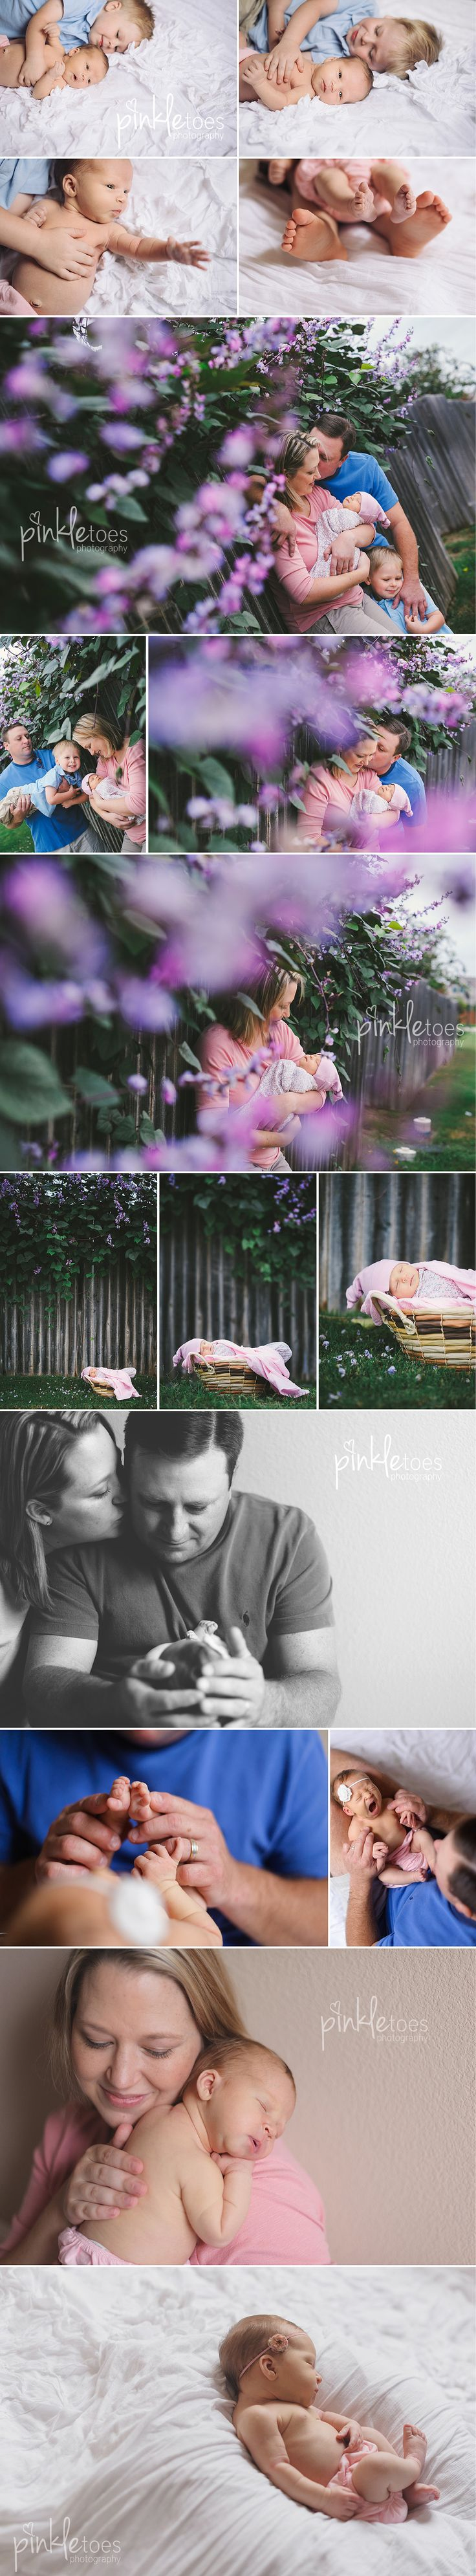 lifestyle family newborn   © michele anderson, pinkle toes photography